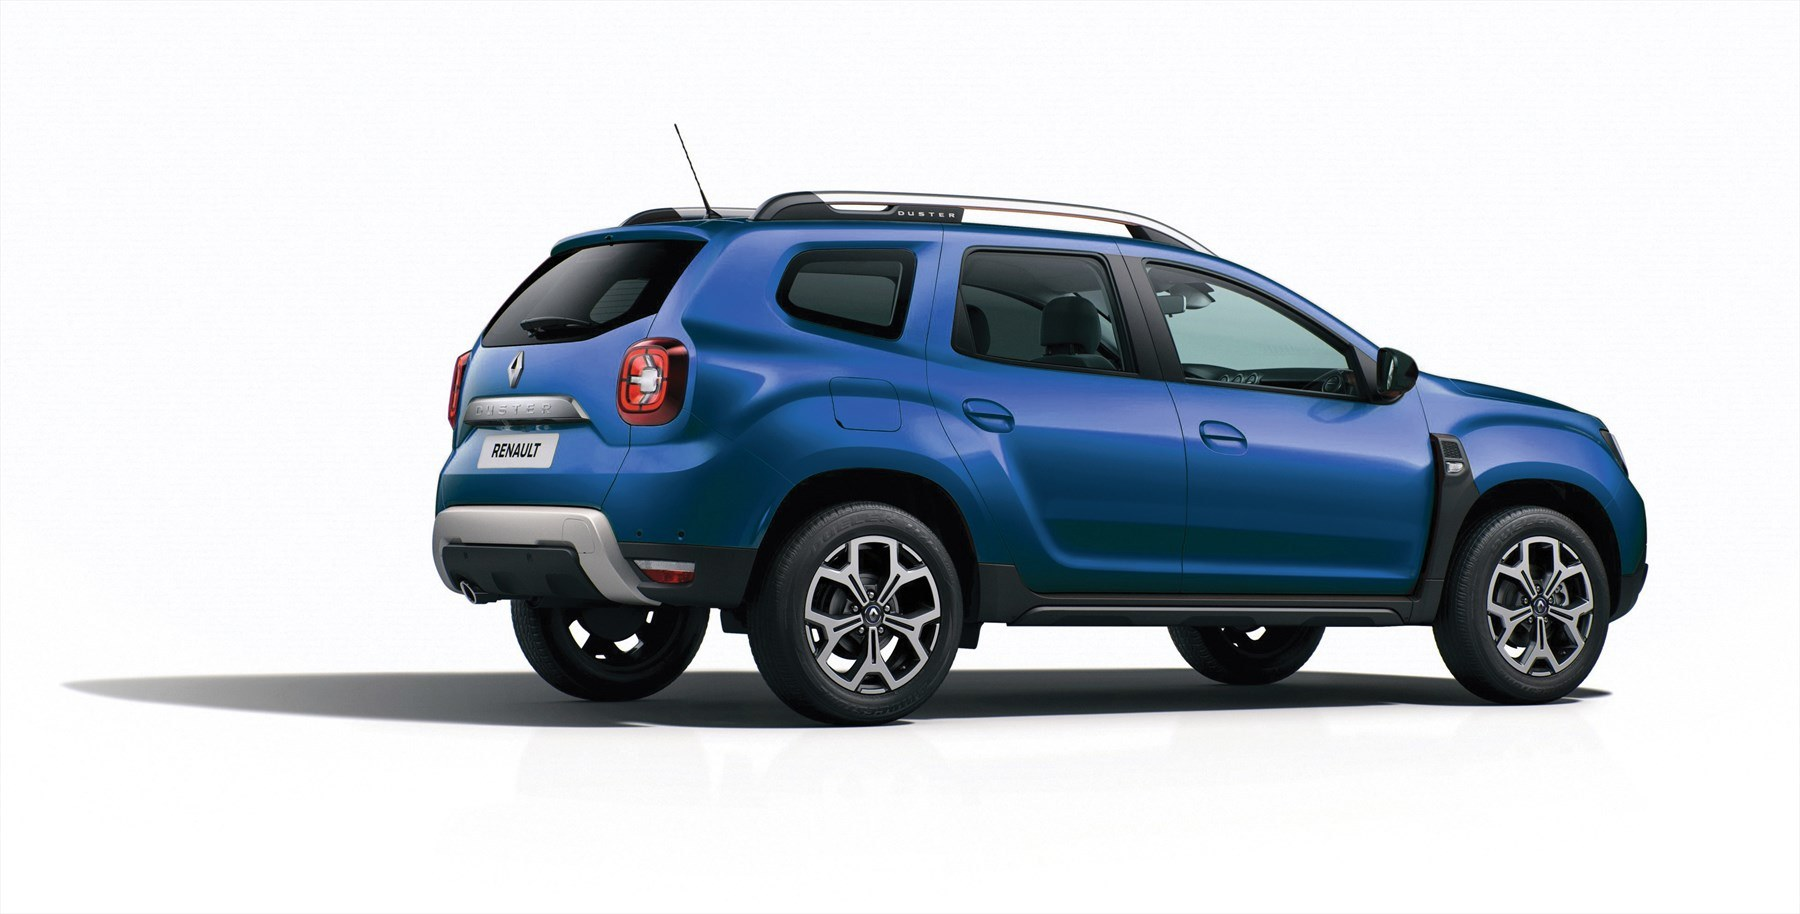 Renault duster techroad2020 3q side 1800x1800